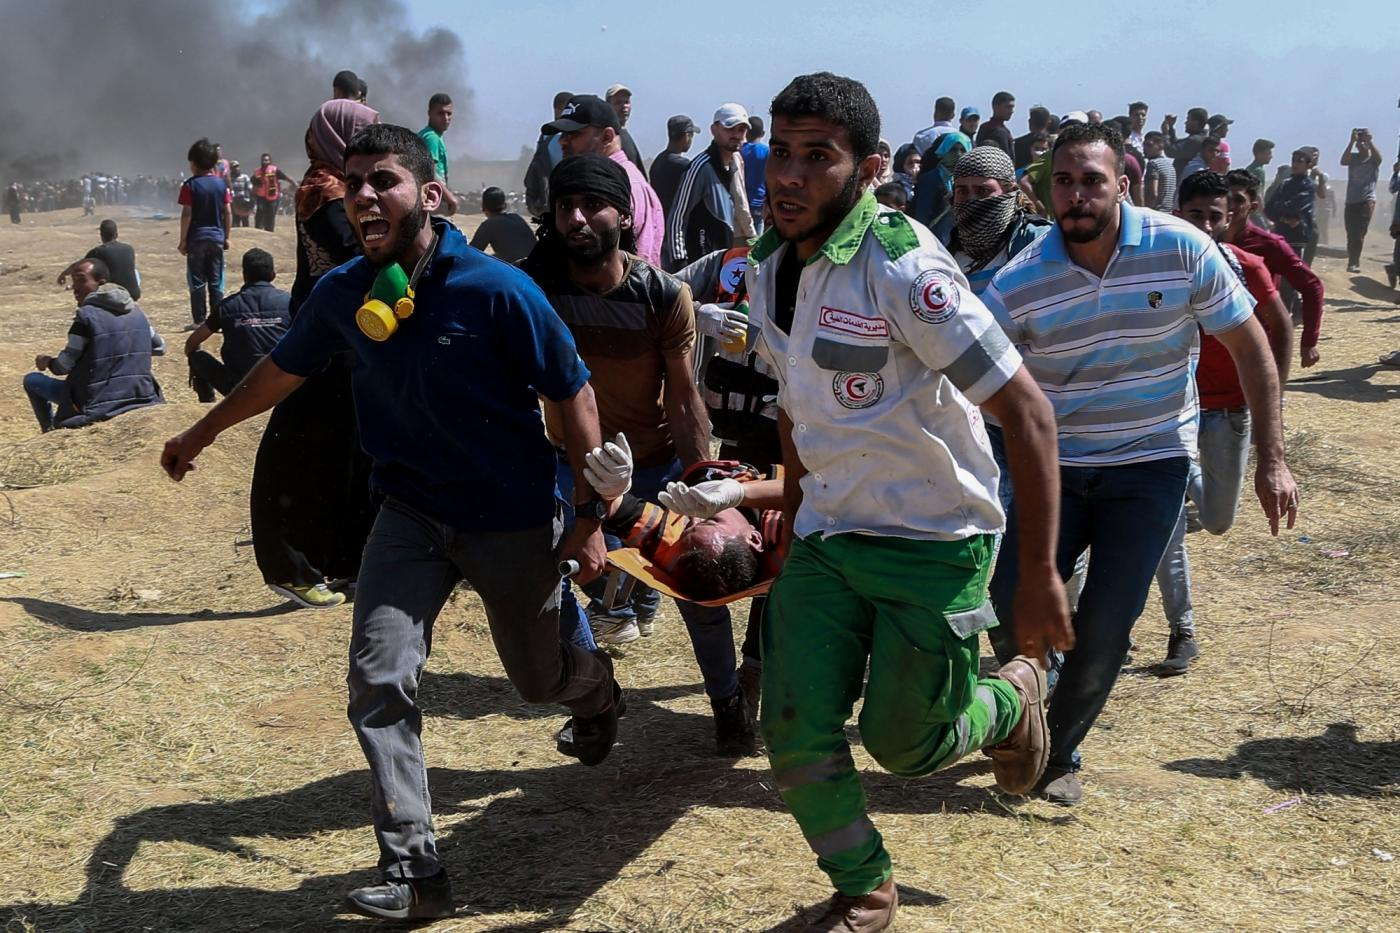 GAZA, May 14, 2018 (Xinhua) -- Palestinian medics and protesters carry an injured man during clashes with Israeli troops near the Gaza-Israel border, east of Gaza City, on May 14, 2018. More than 40 Palestinians, including children, were killed Monday in a day of violent clashes with Israeli forces on Israel's southern border with Gaza, according to the Gaza health ministry. (Xinhua/Wissam Nassar/IANS) by .